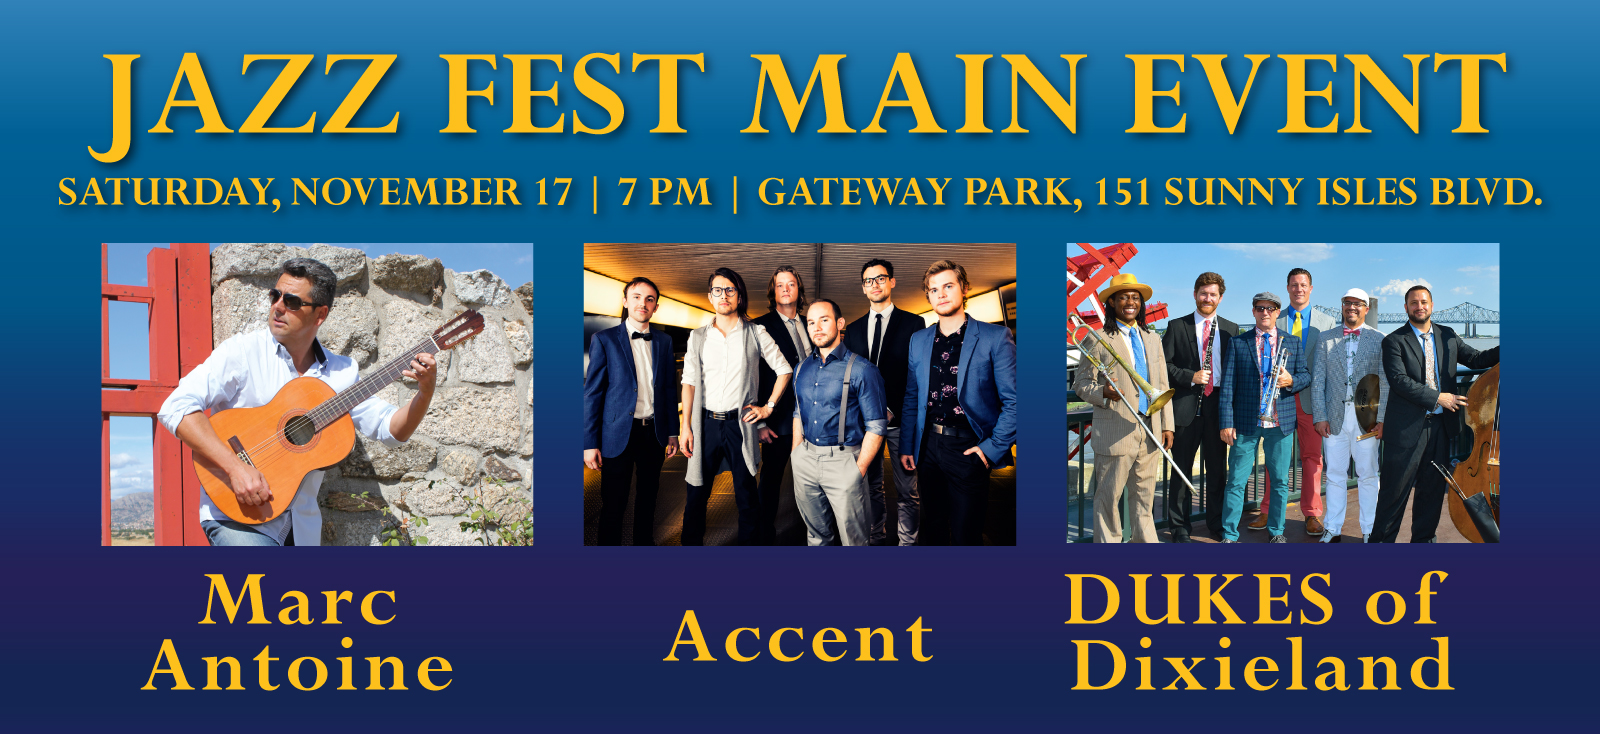 Jazz Fest Main Event, Saturday, November 17, 7pm, Gateway Park 151 Sunny Isles Blvd., Marc Antoine, Accent, DUKES of Dixieland